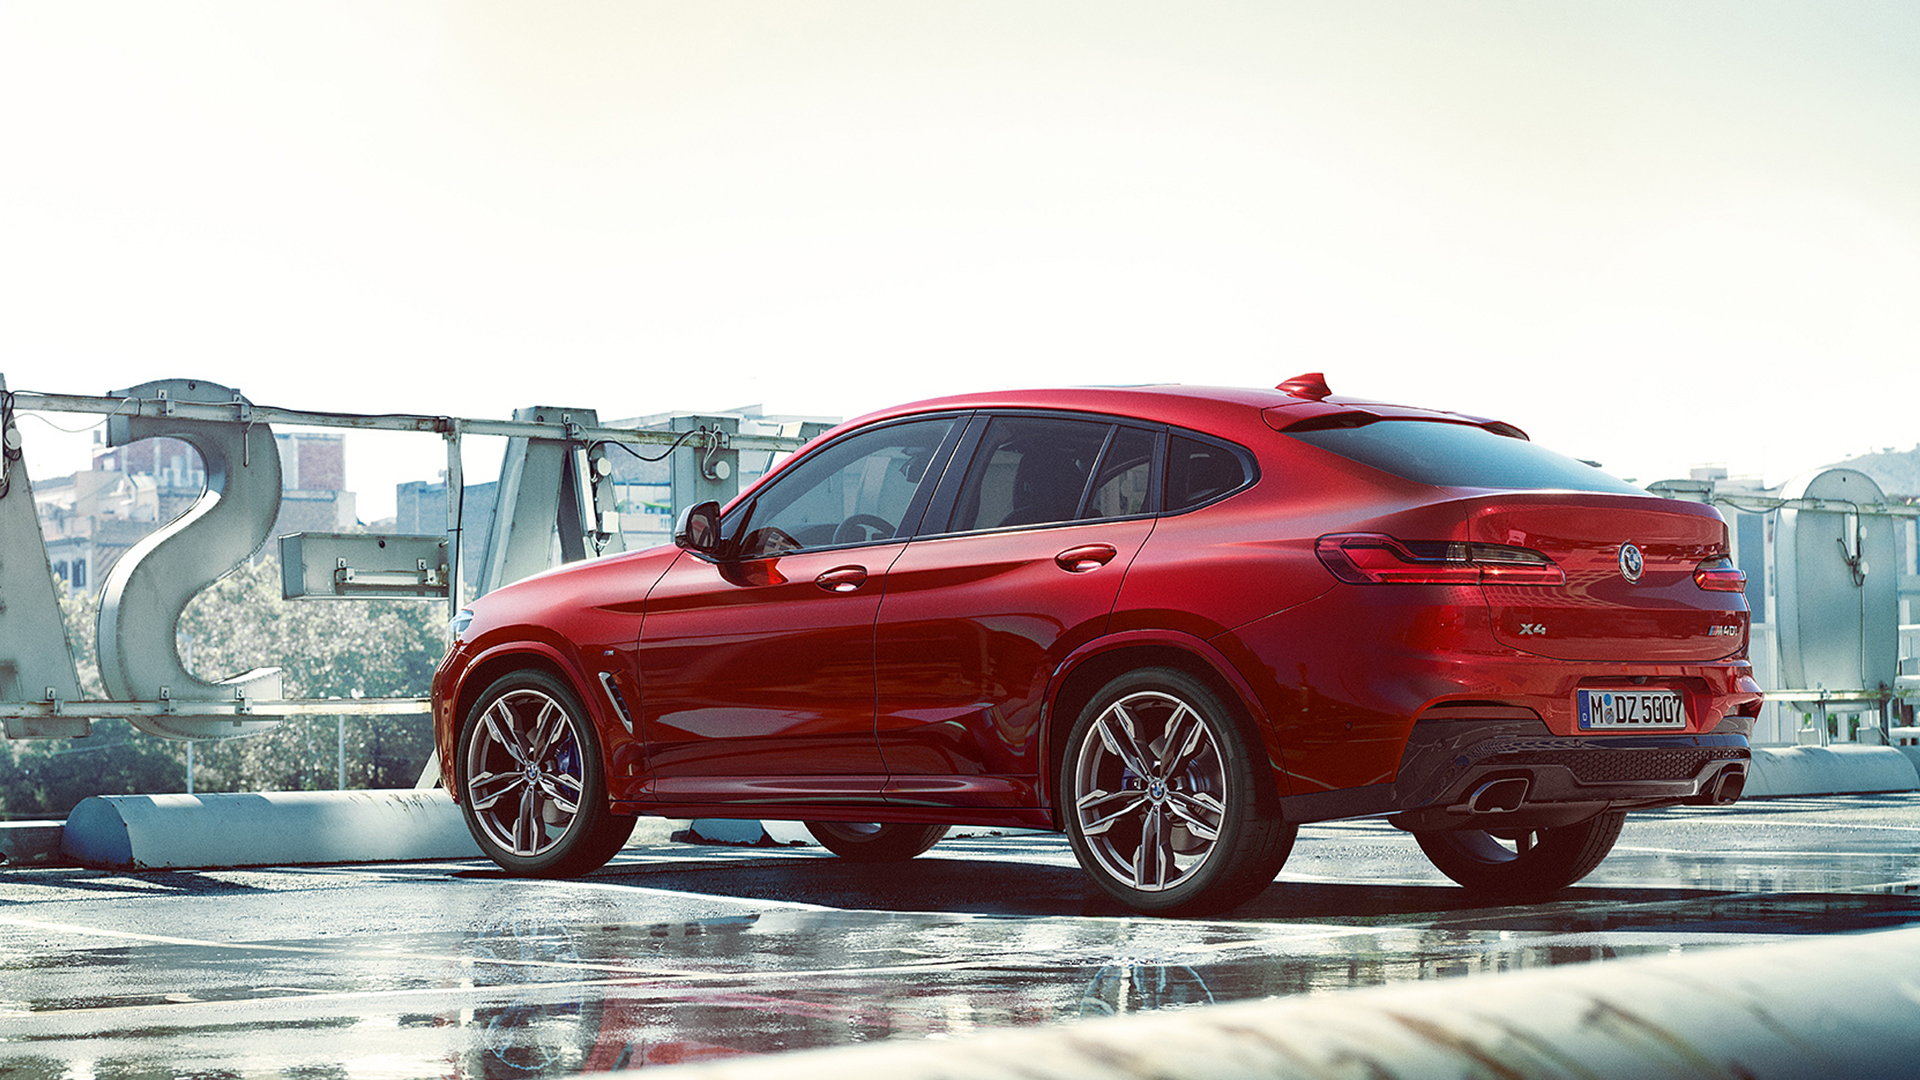 1920x1080 - BMW X4 Wallpapers 34